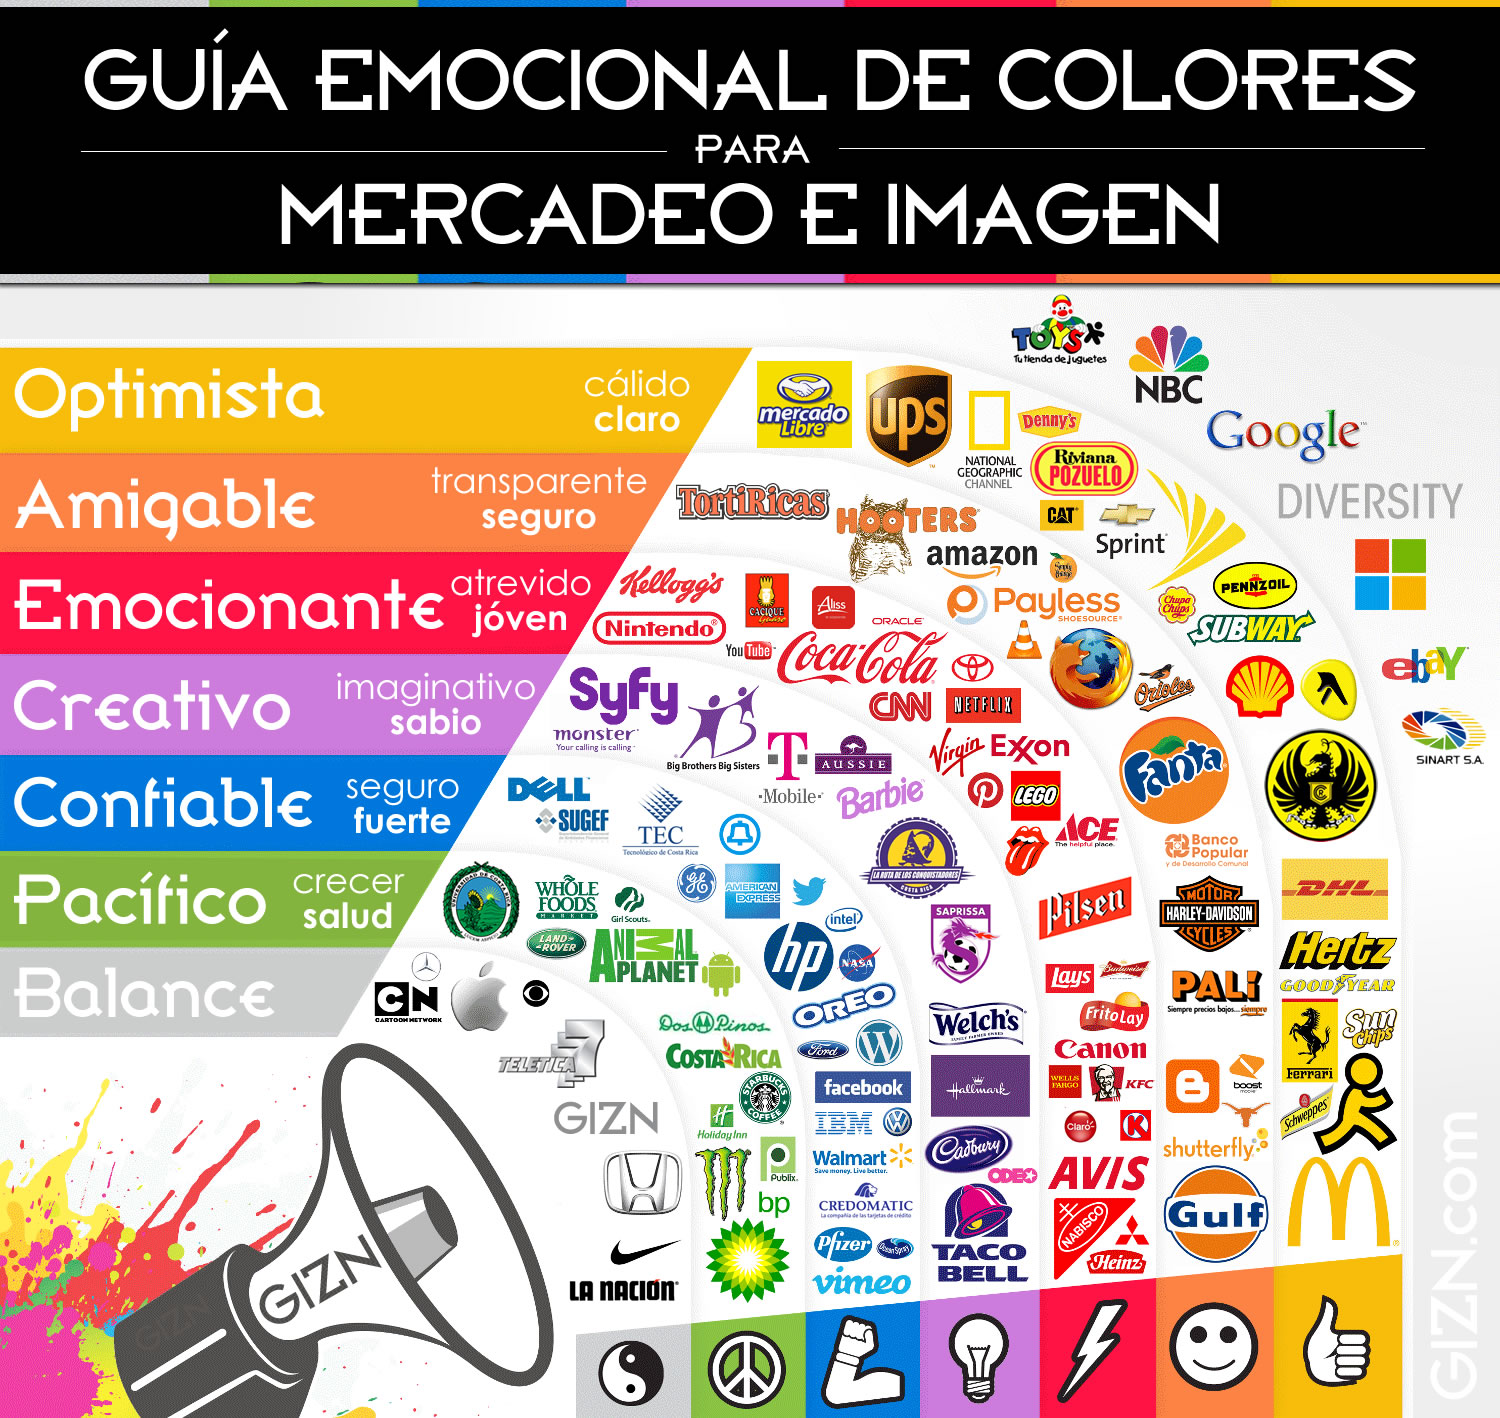 Imagen basada en https://thelogocompany.net/blog/infographics/psychology-color-logo-design/